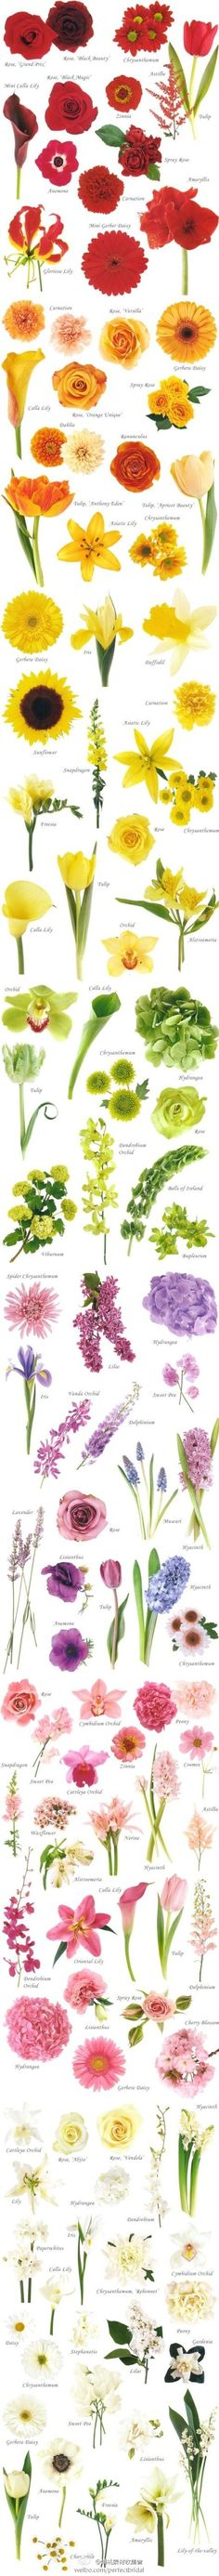 Know your flowers!